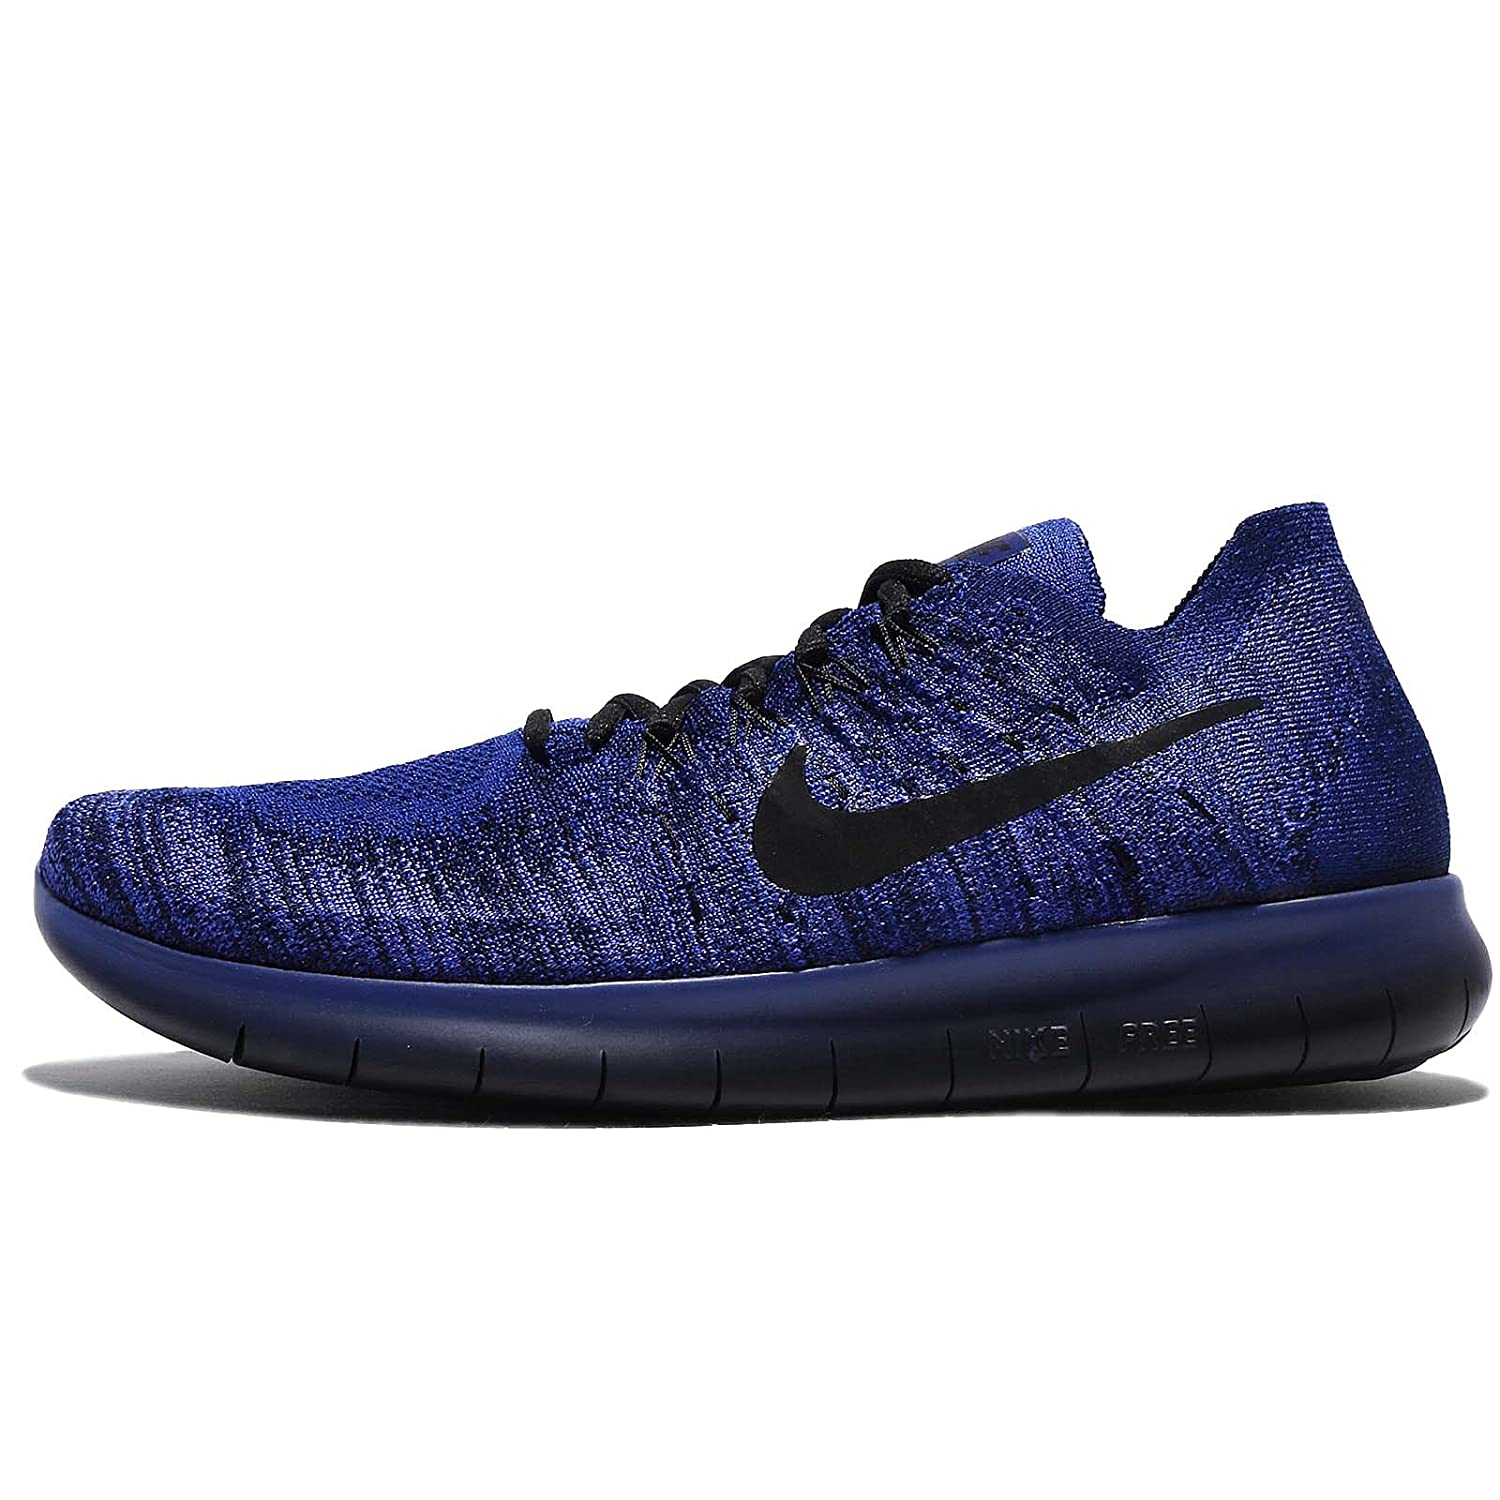 1a6f7fc720e38 Nike Free RN Flyknit 2017 880843 406 Deep Royal Blue Black (10.5)  Buy  Online at Low Prices in India - Amazon.in